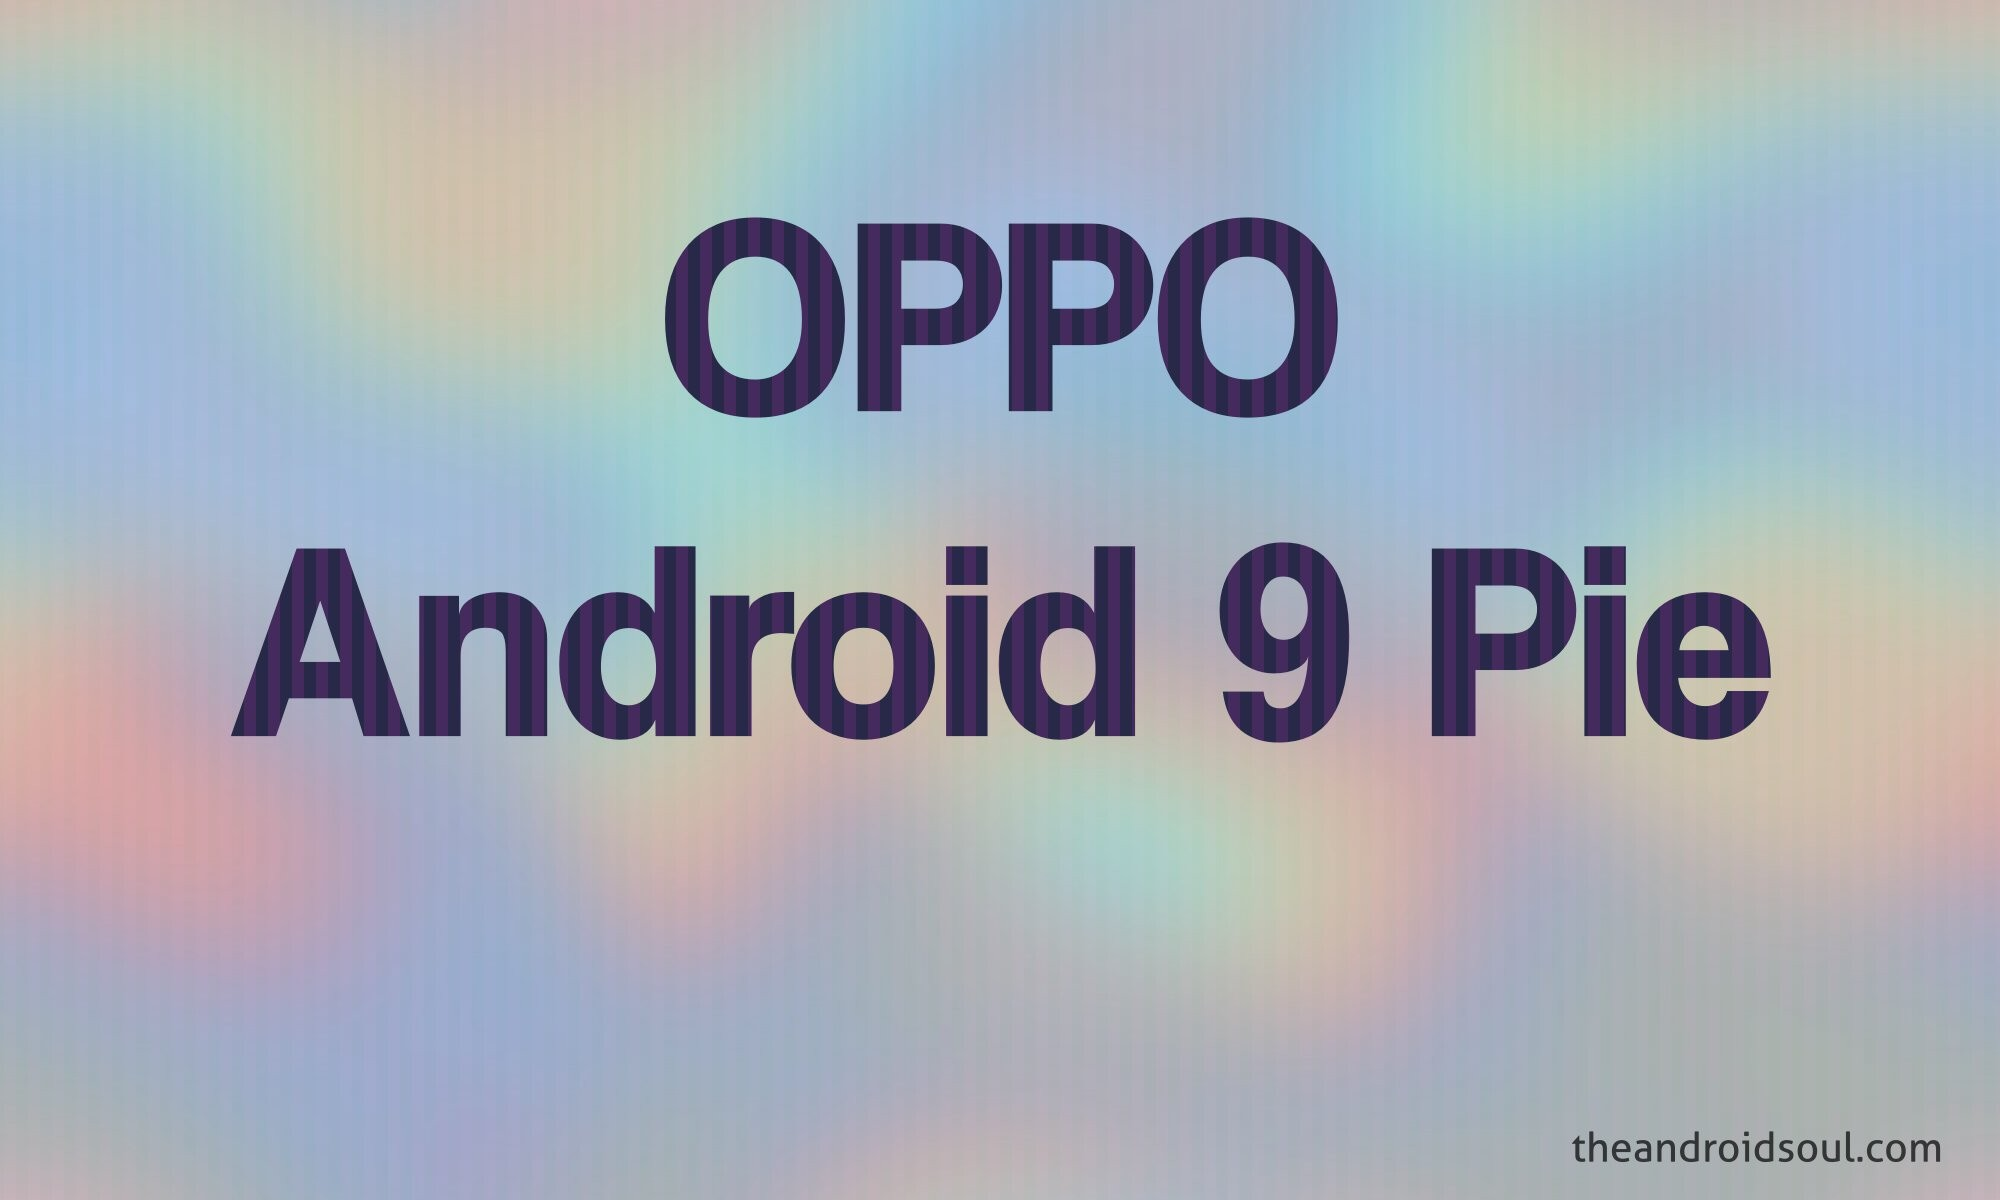 oppo Android 9 Pie Release date